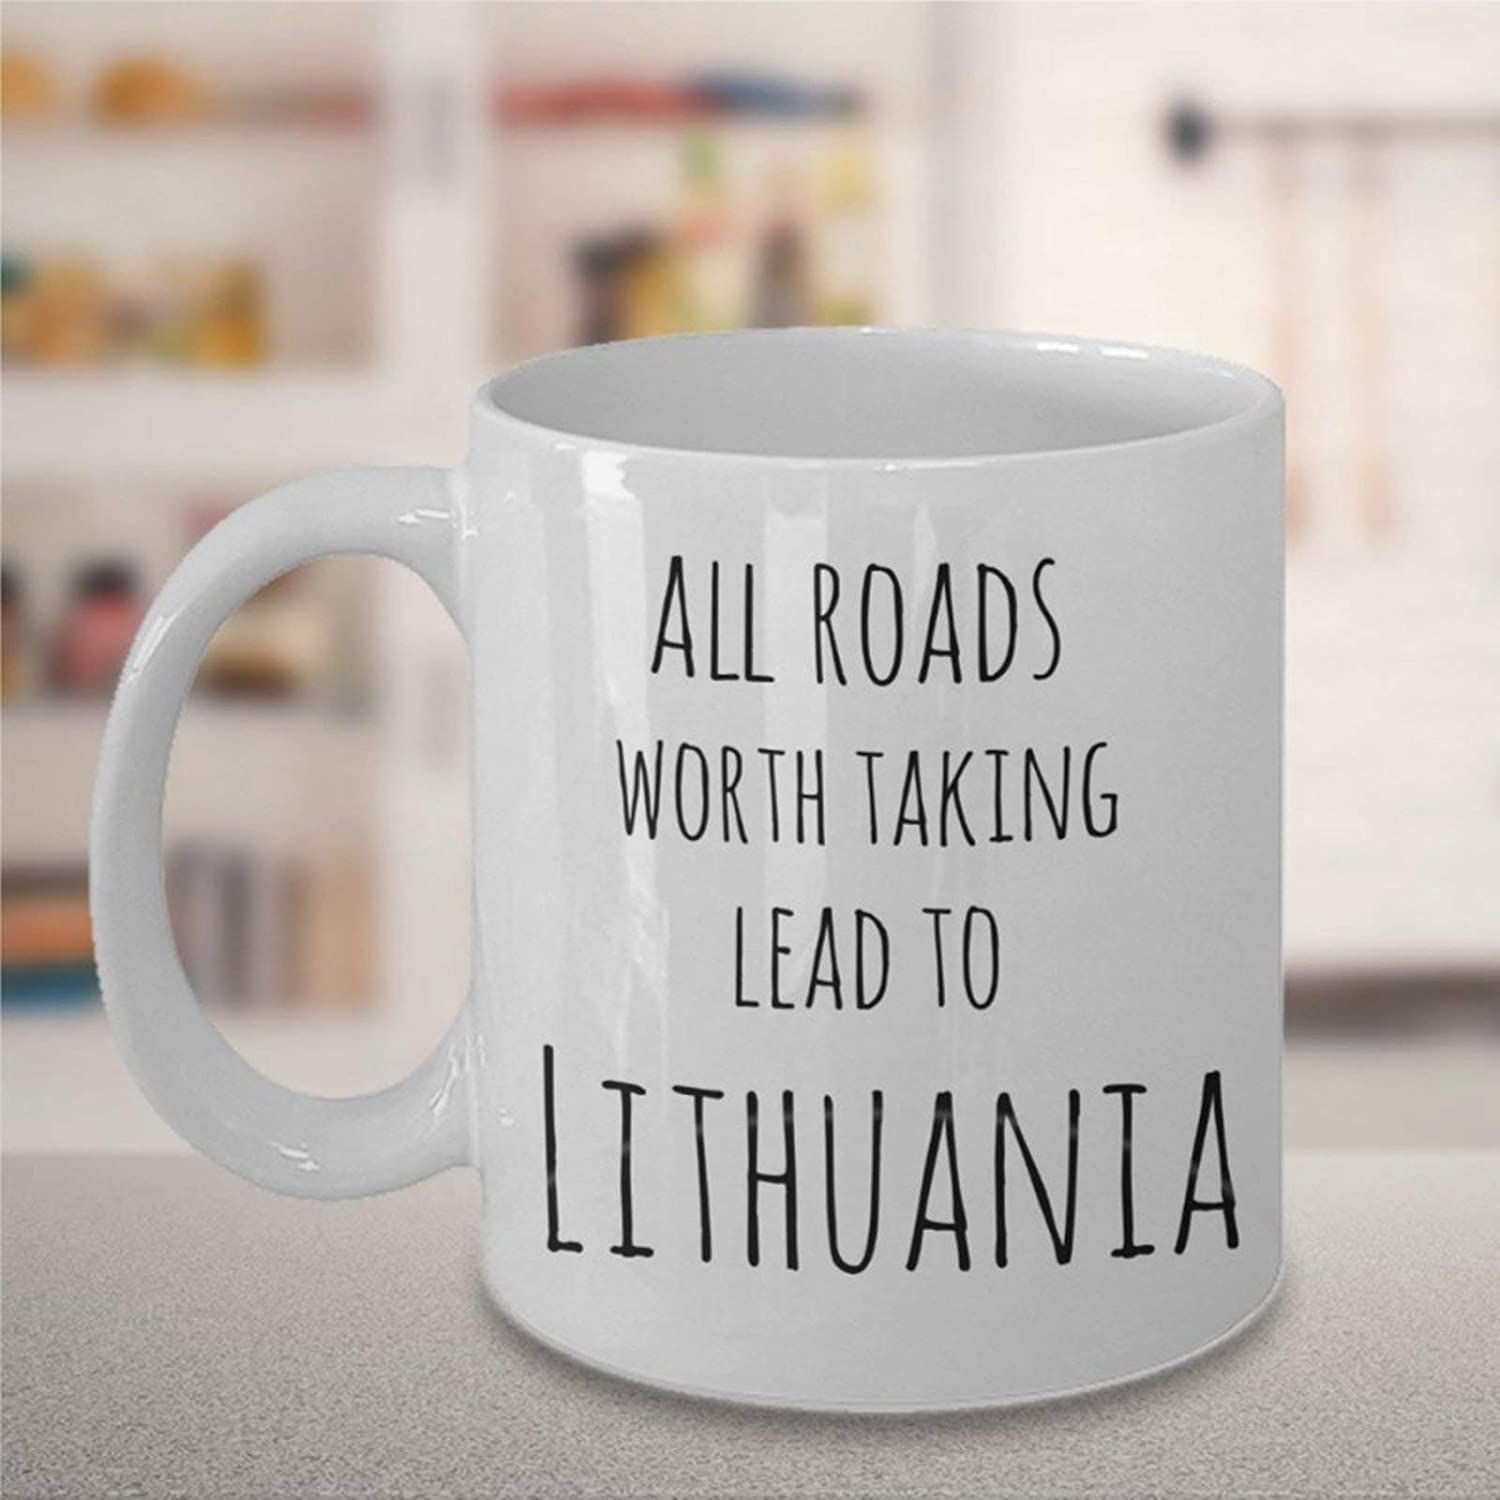 Lithuanian Coffee Mug,Ceramic Mug Cup for Office and Home,Tea Milk,Birthday For Her or Him,11oz